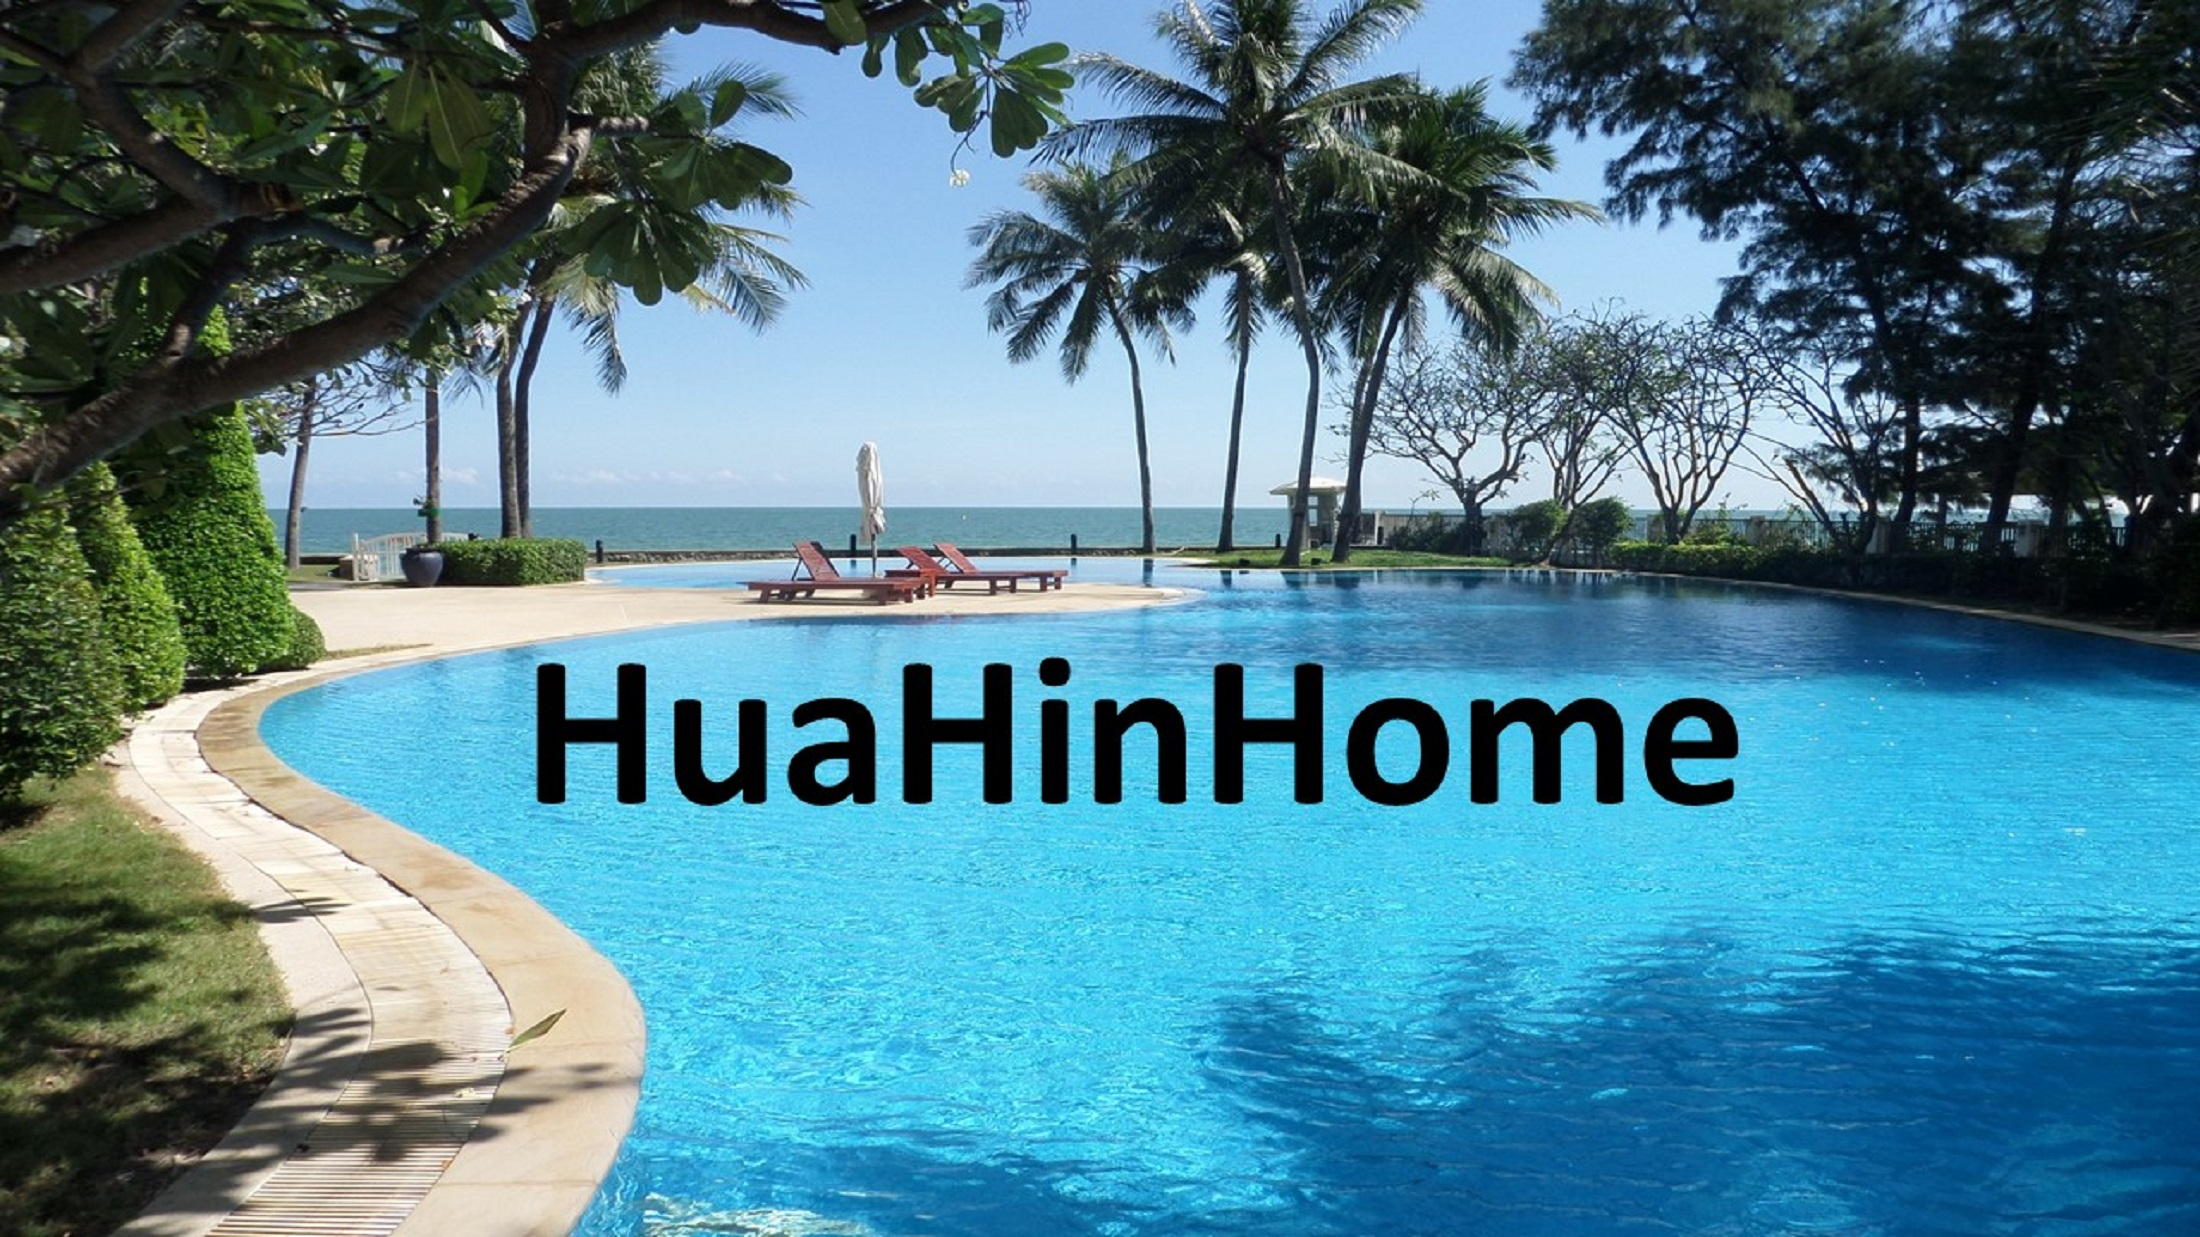 Huahinhome | Huahinhome   2 bedroom houses. Price 2500-2999 baht